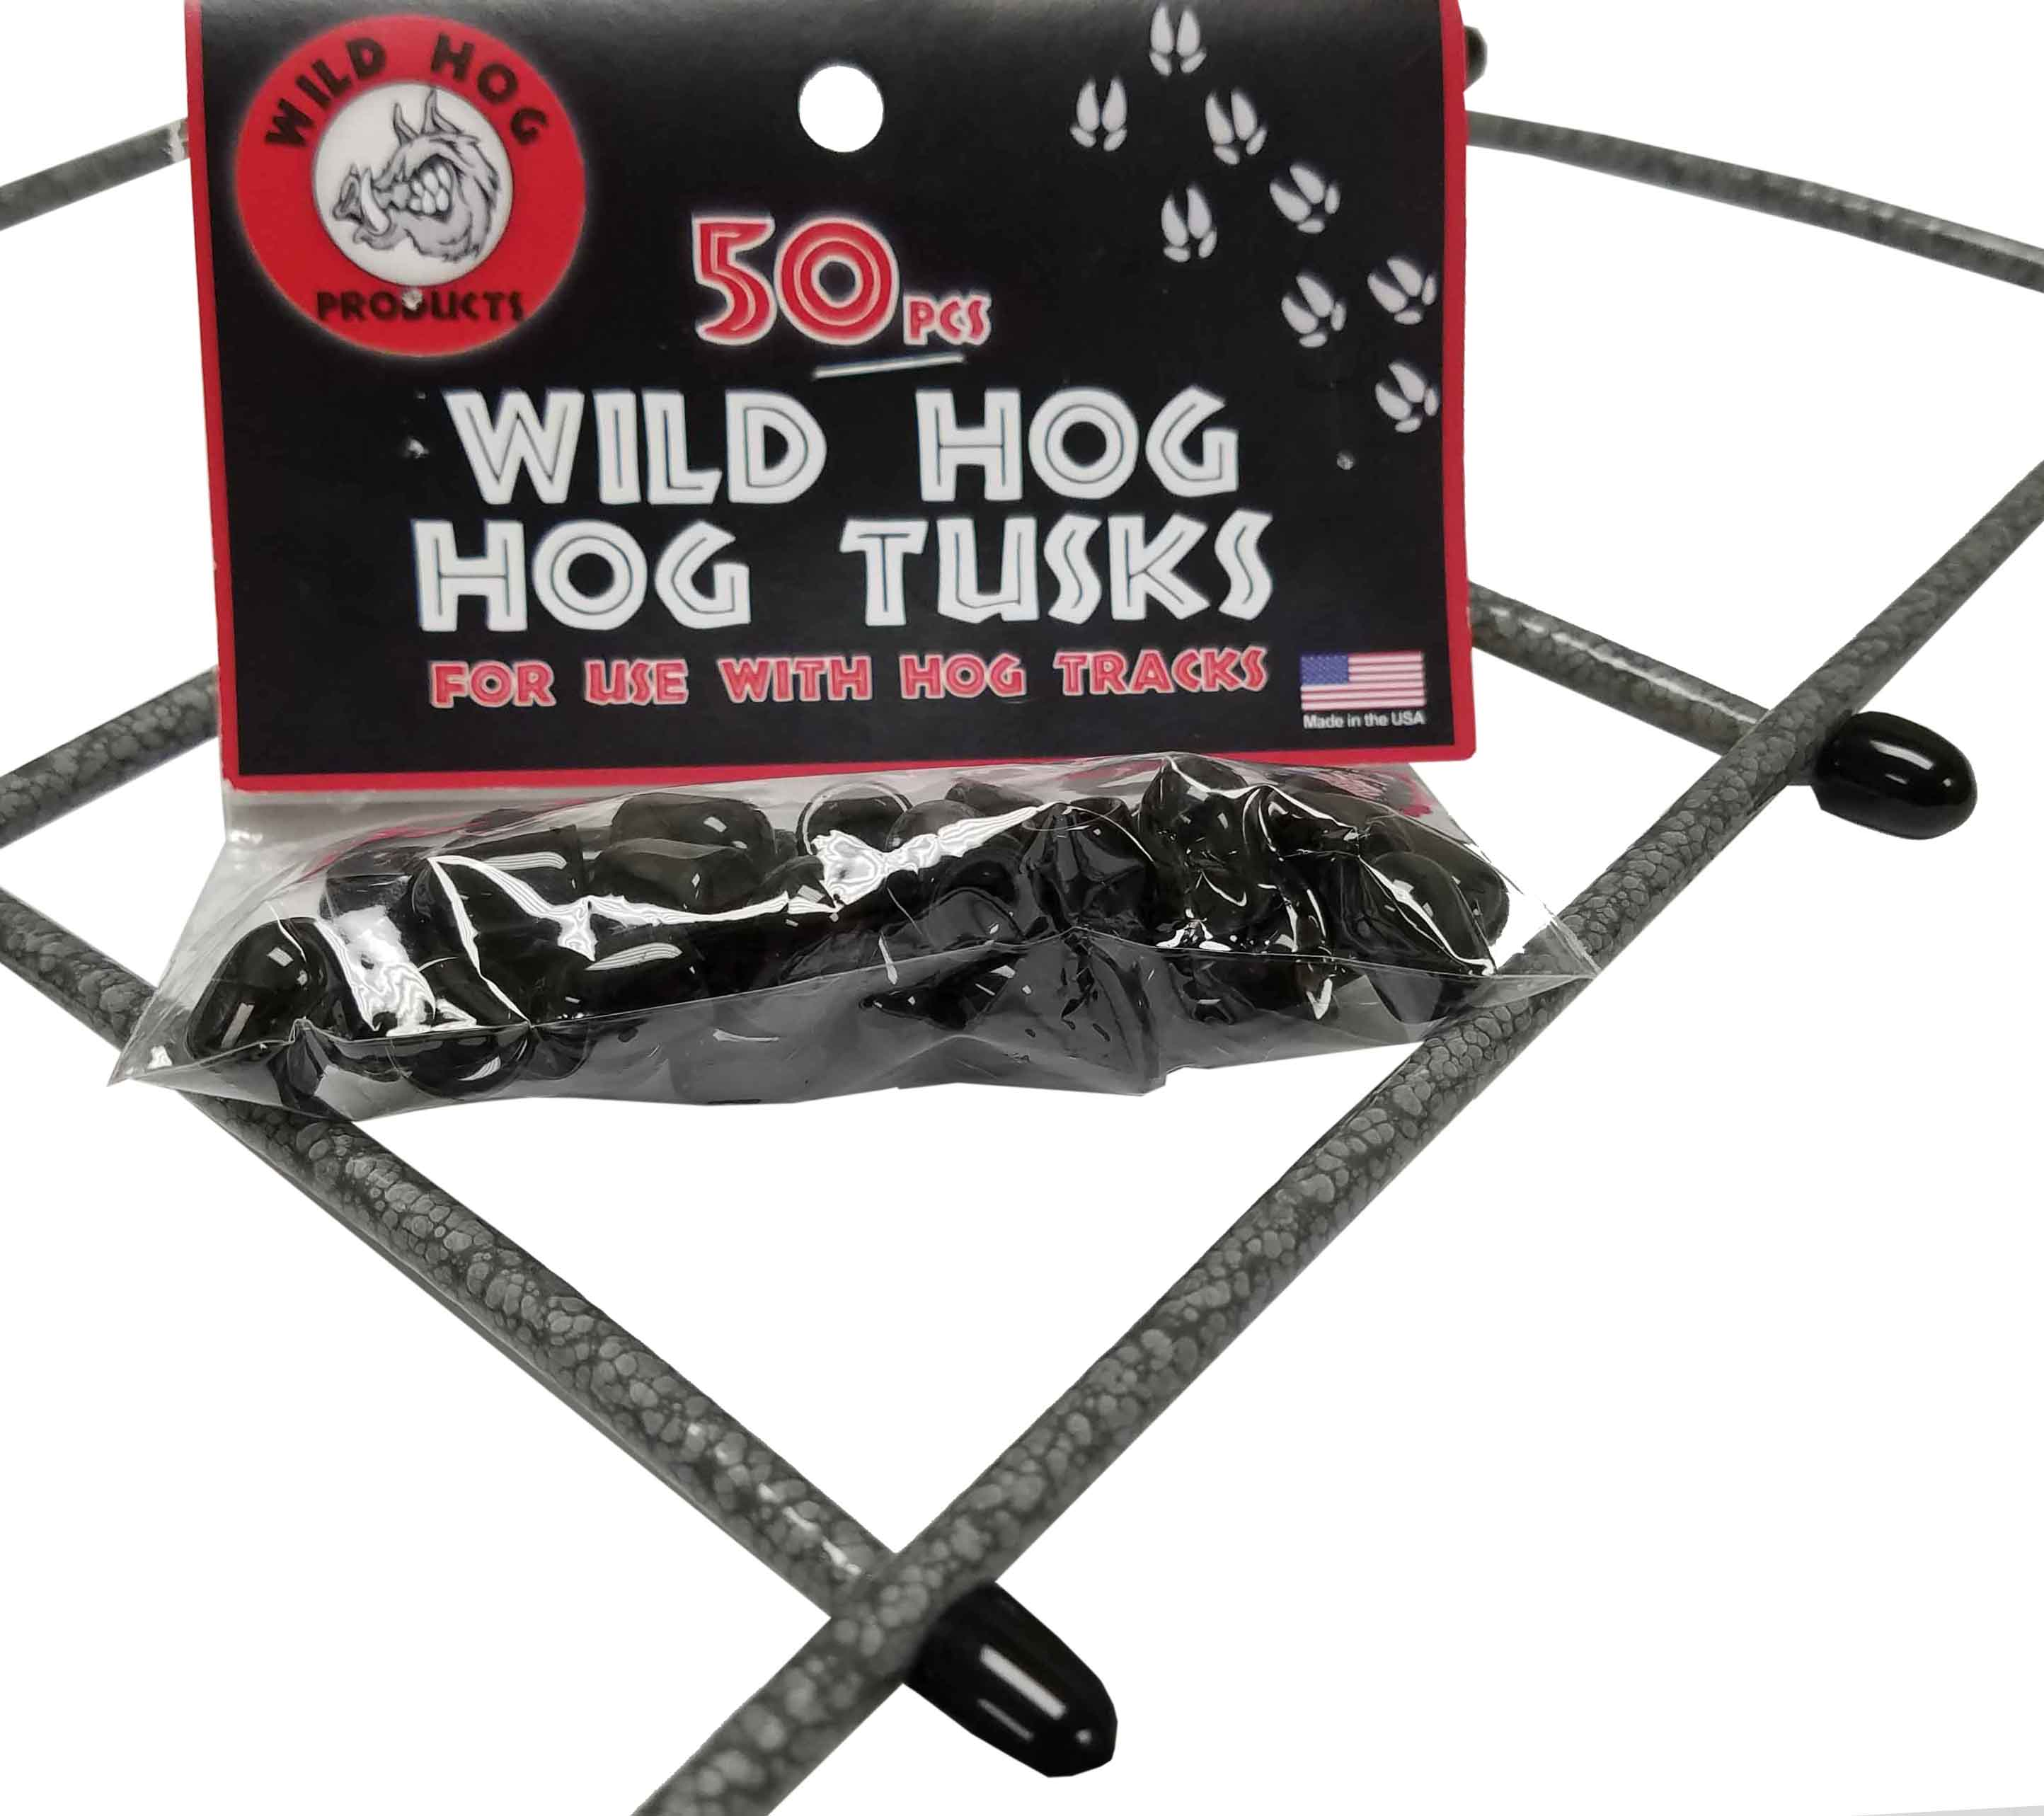 Wild Hog Accessories Weekes Forest Products